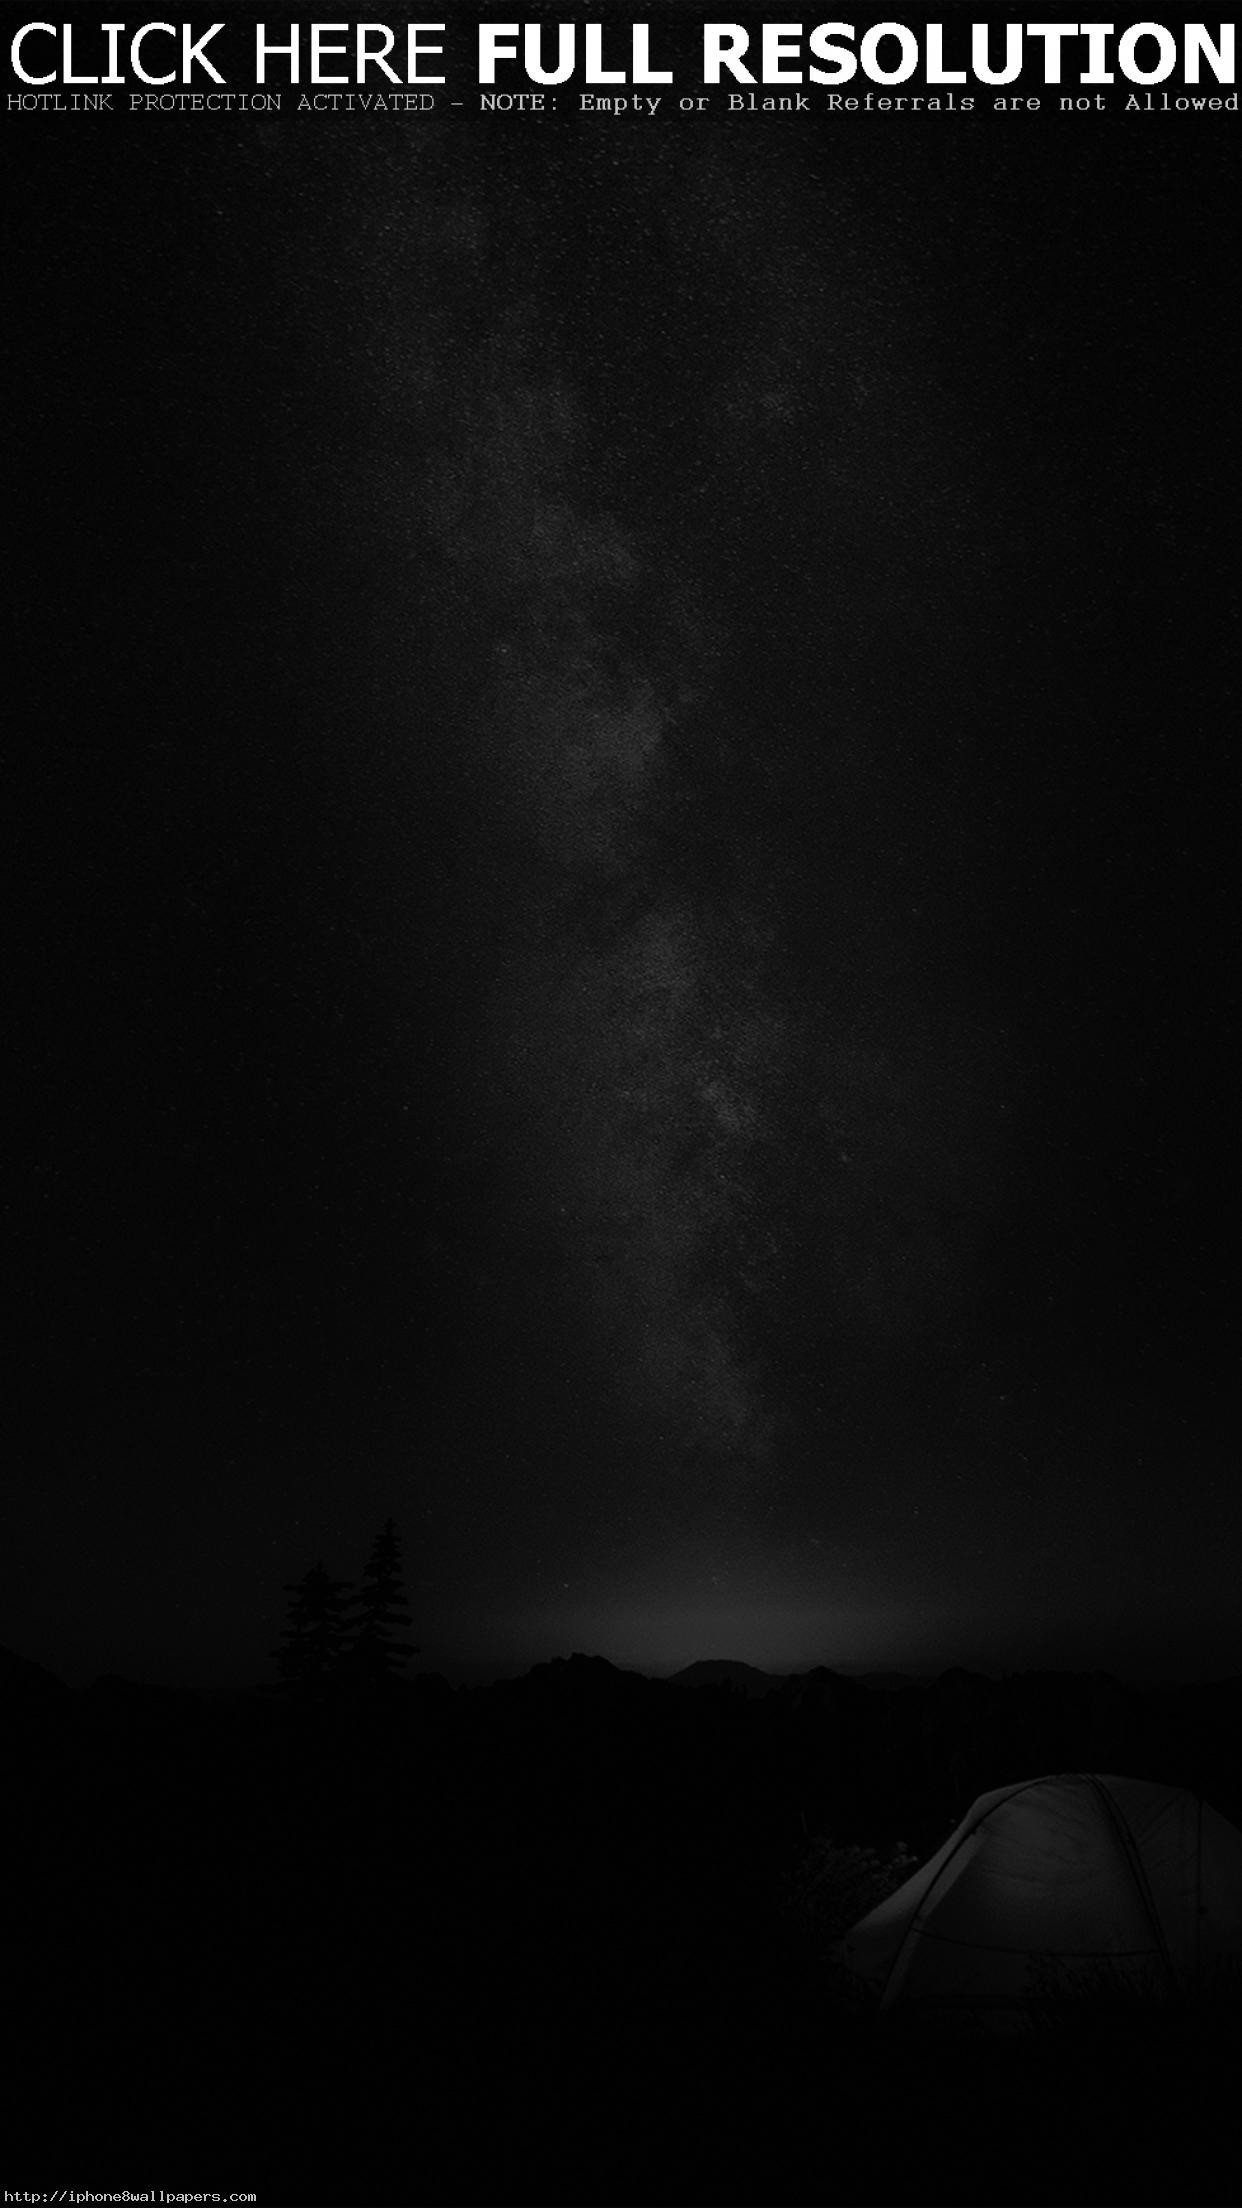 Camping Night Star Galaxy Milky Sky Dark Space Bw Dark Android wallpaper –  Android HD wallpapers